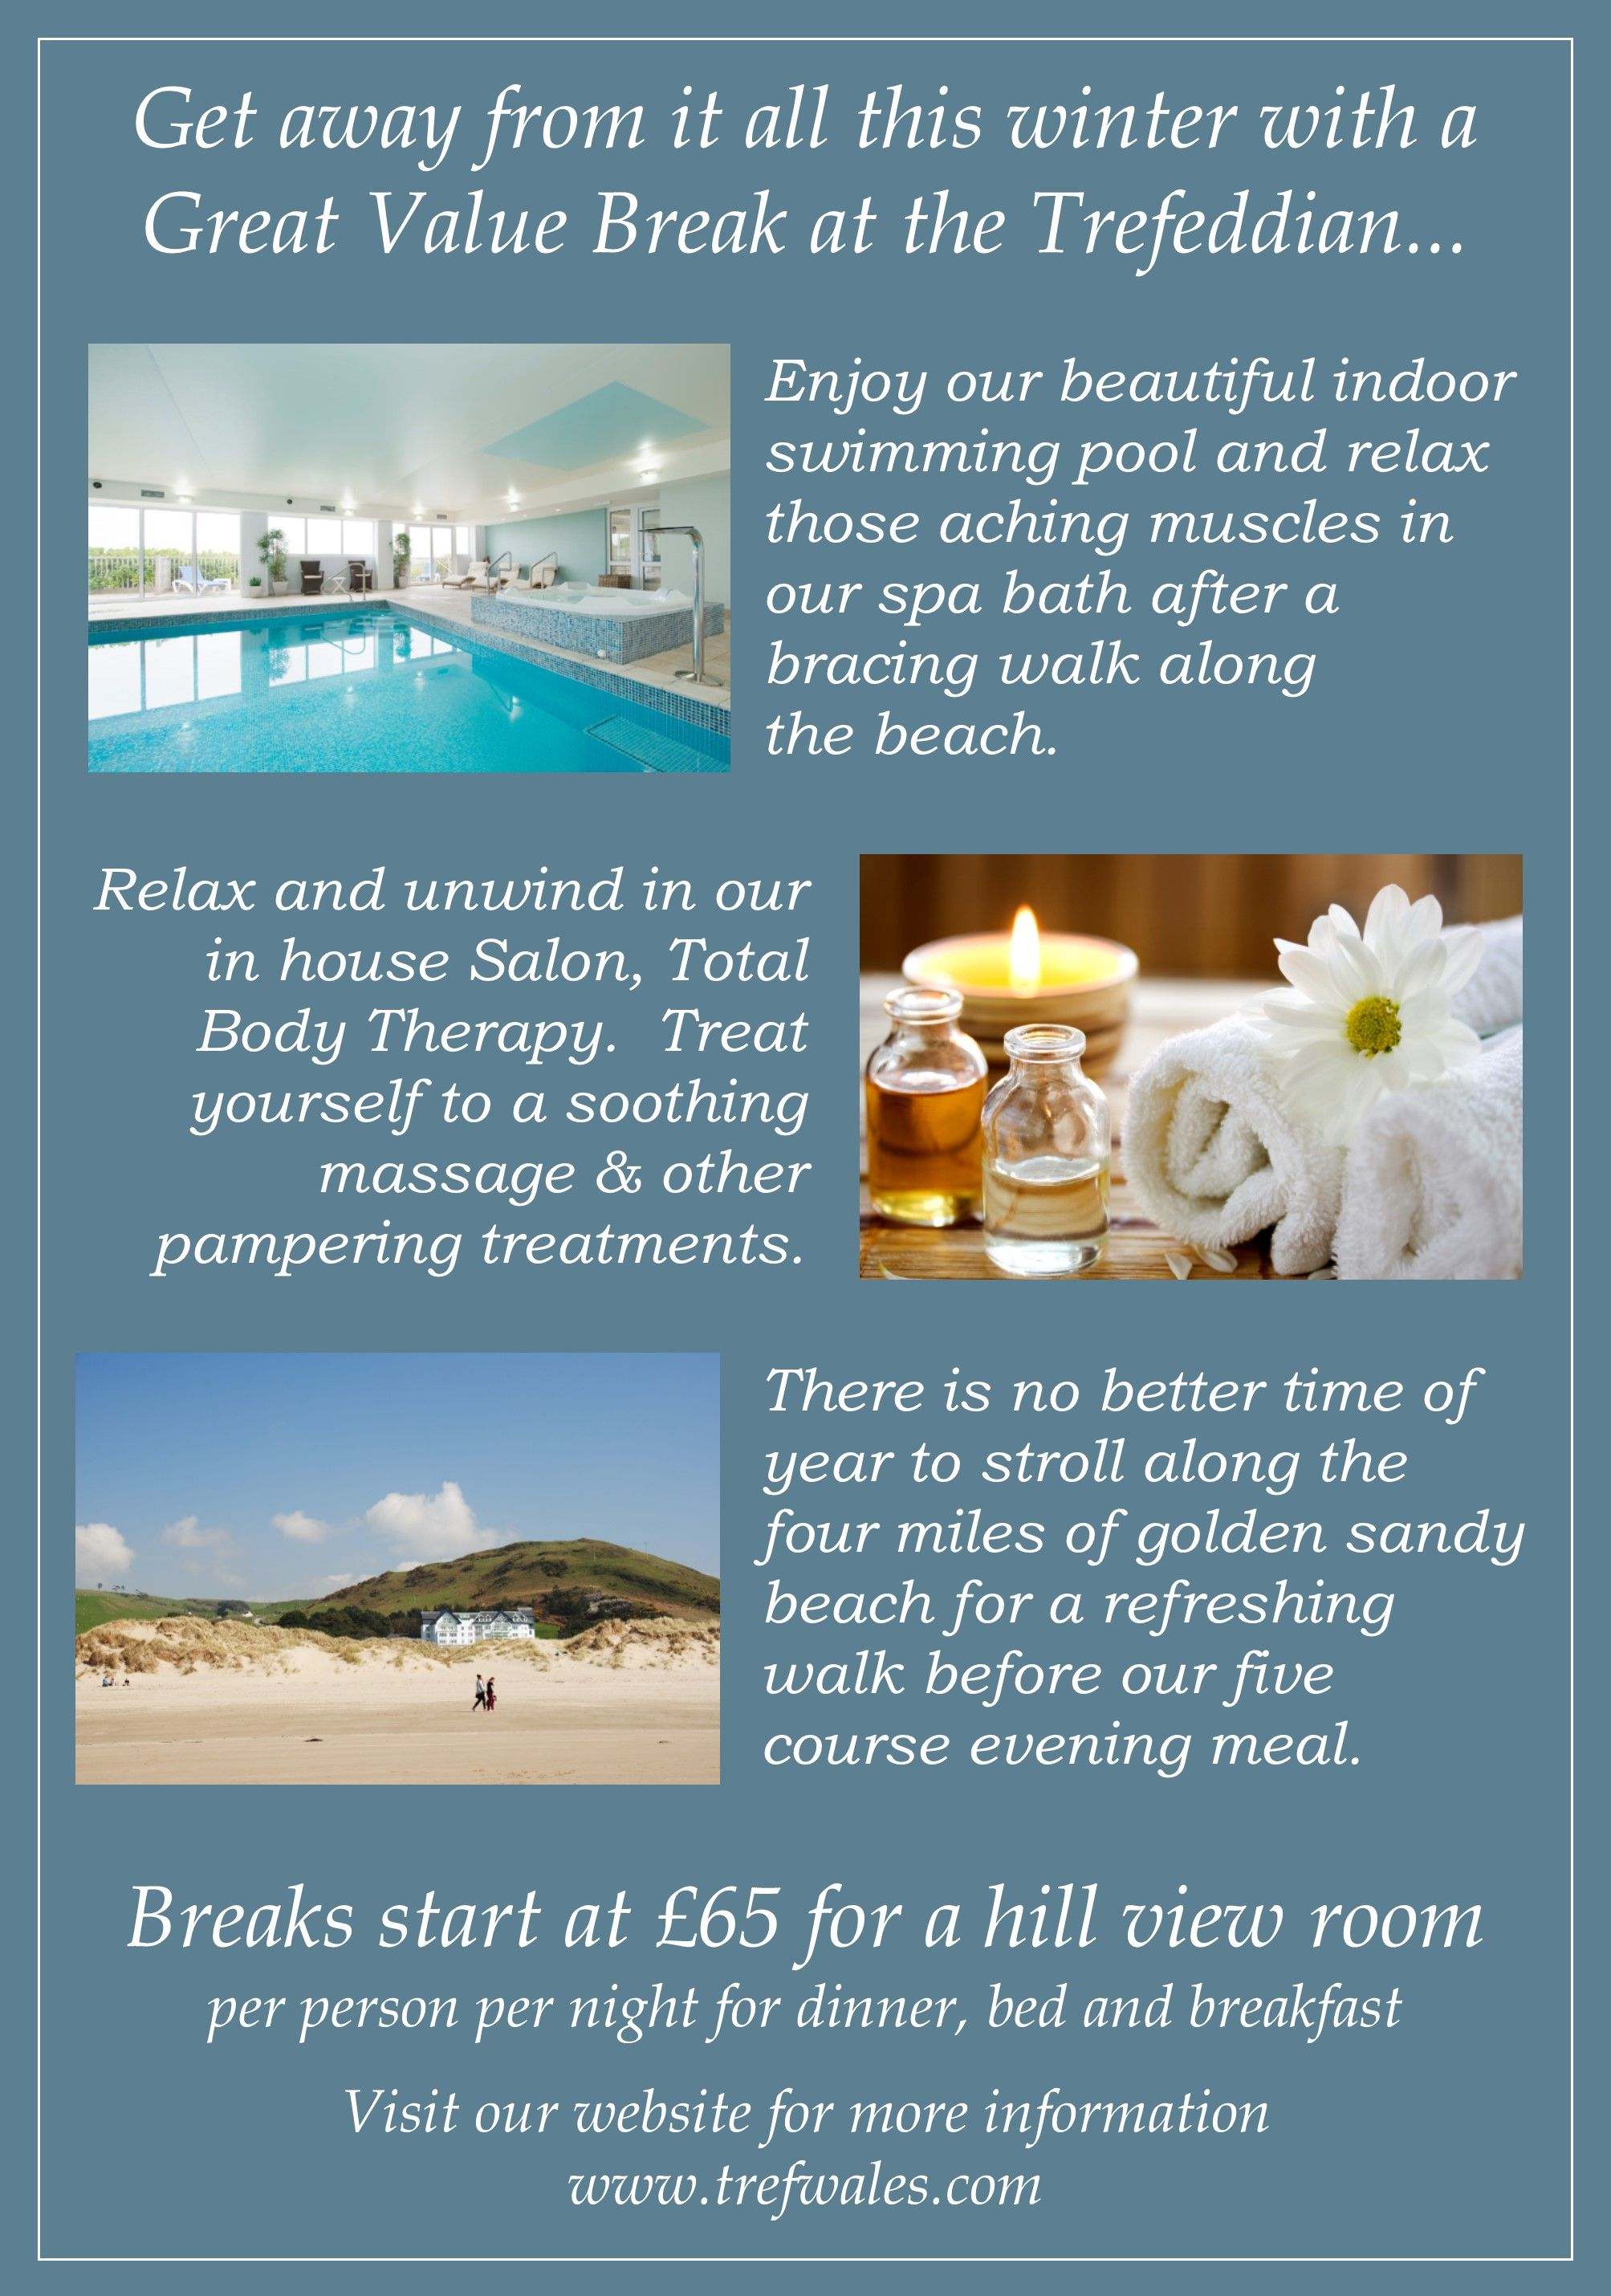 Why not join us for a Great Value Winter Break and escape those Winter Blues